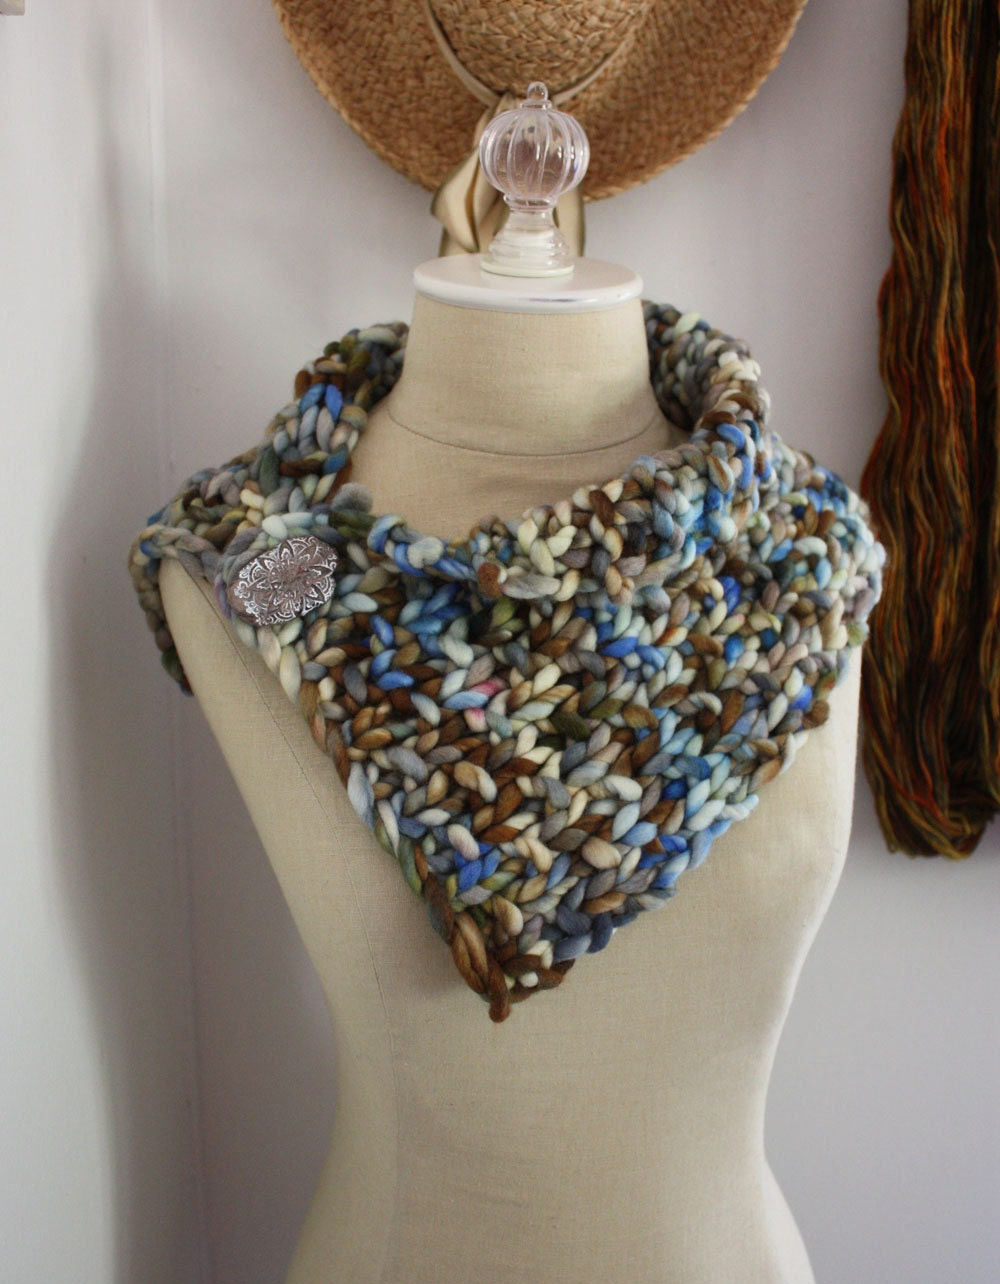 Knitting Patterns For Chunky Weight Yarn : Knitting Pattern / Super Chunky Bulky Cowl Neckwarmer